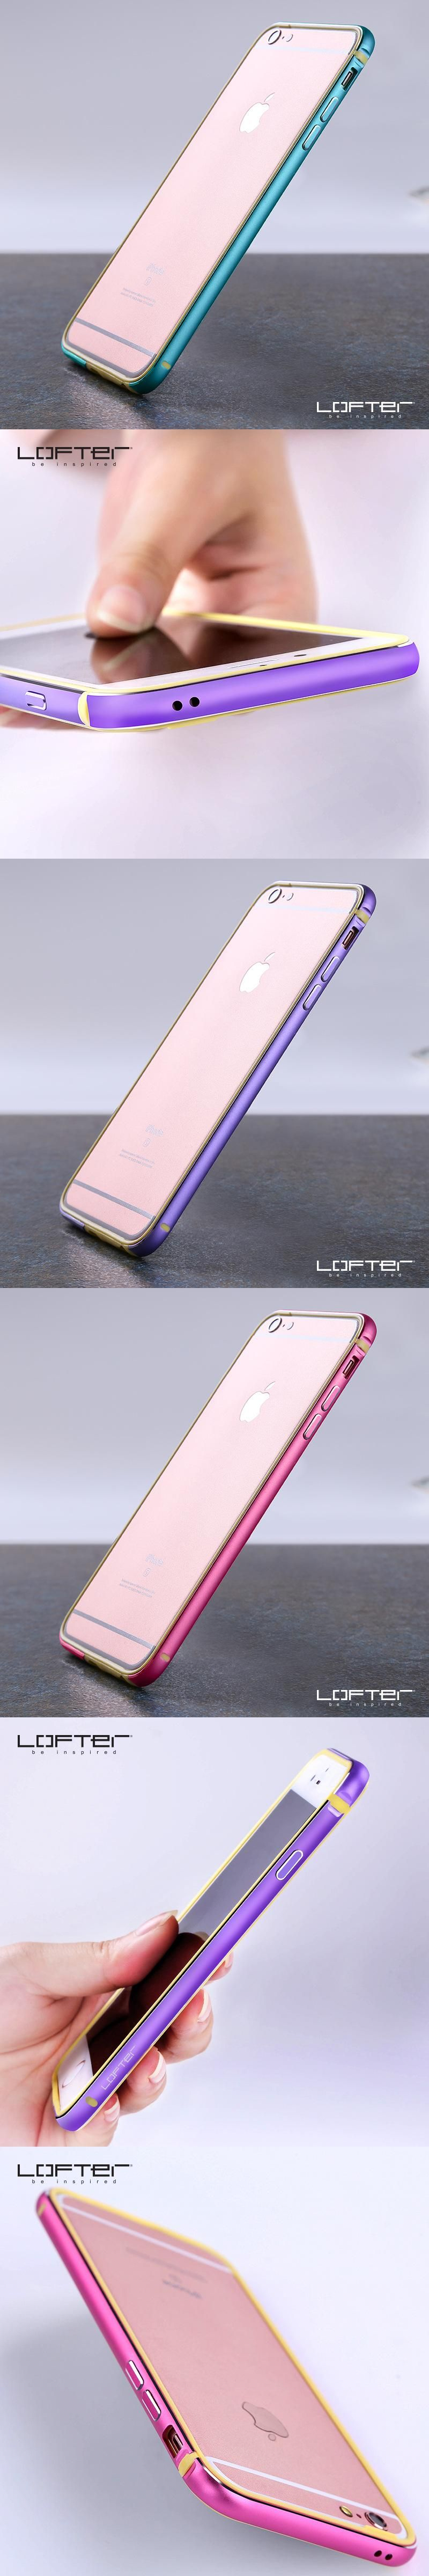 2017 Lofter New Arrival Metal Bumper Frames for iPhone 6 6s 4.7 ...